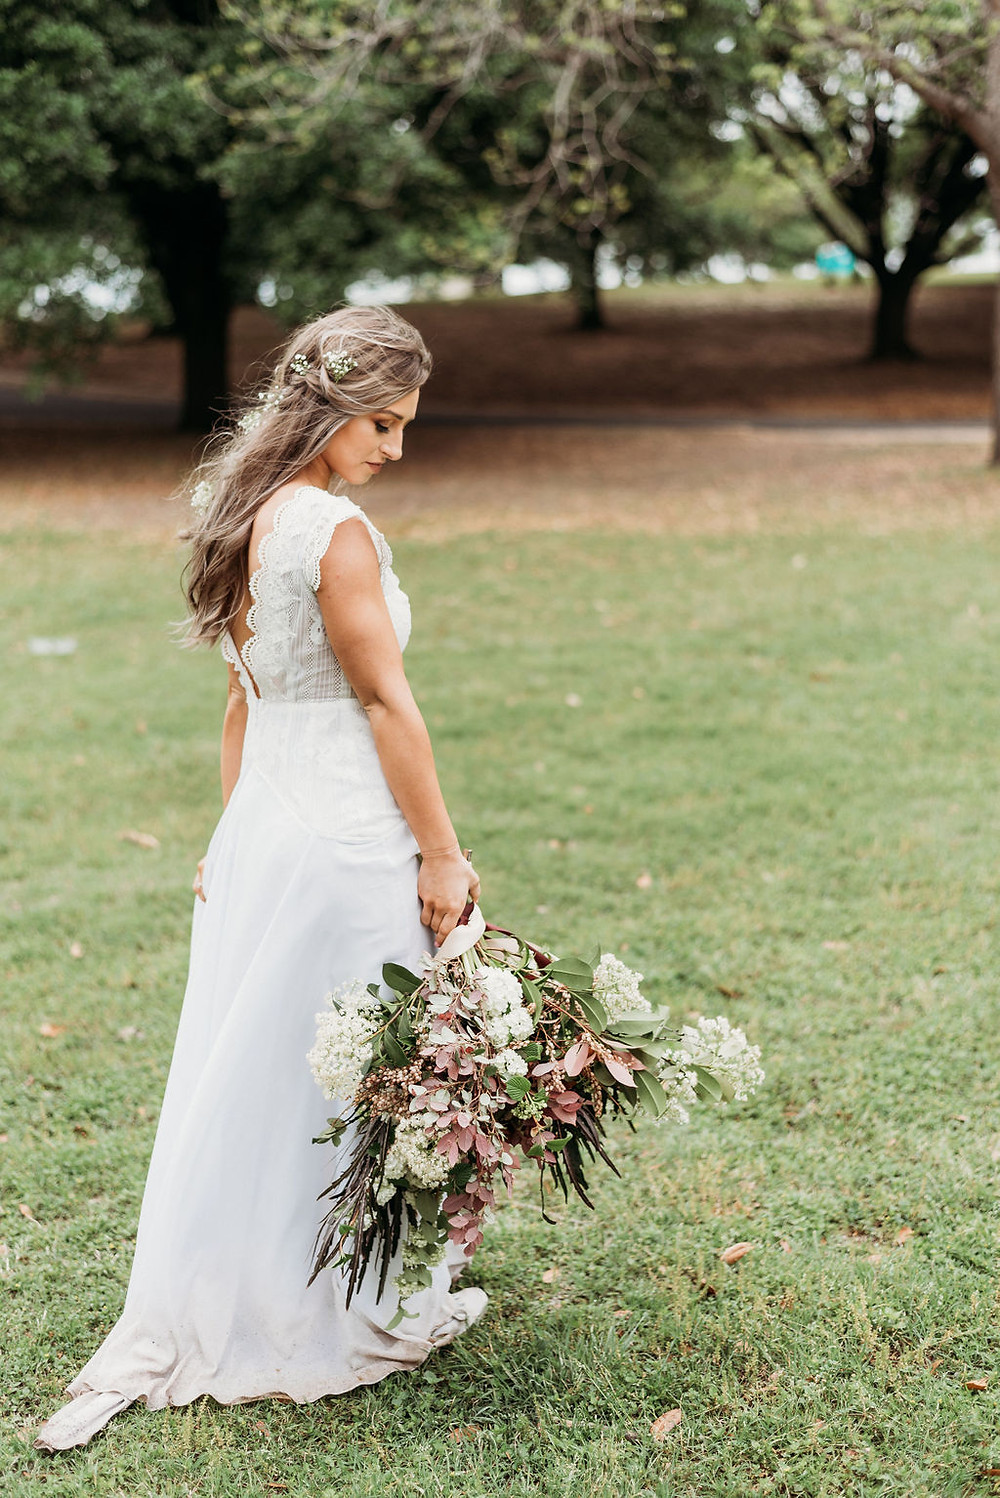 bride looks down at her bridal bouquet from wow factor floral during their austin elopement. boho bride is wearing a boho wedding dress and her wedding hair is styled relaxed and down with baby's breath in her hair